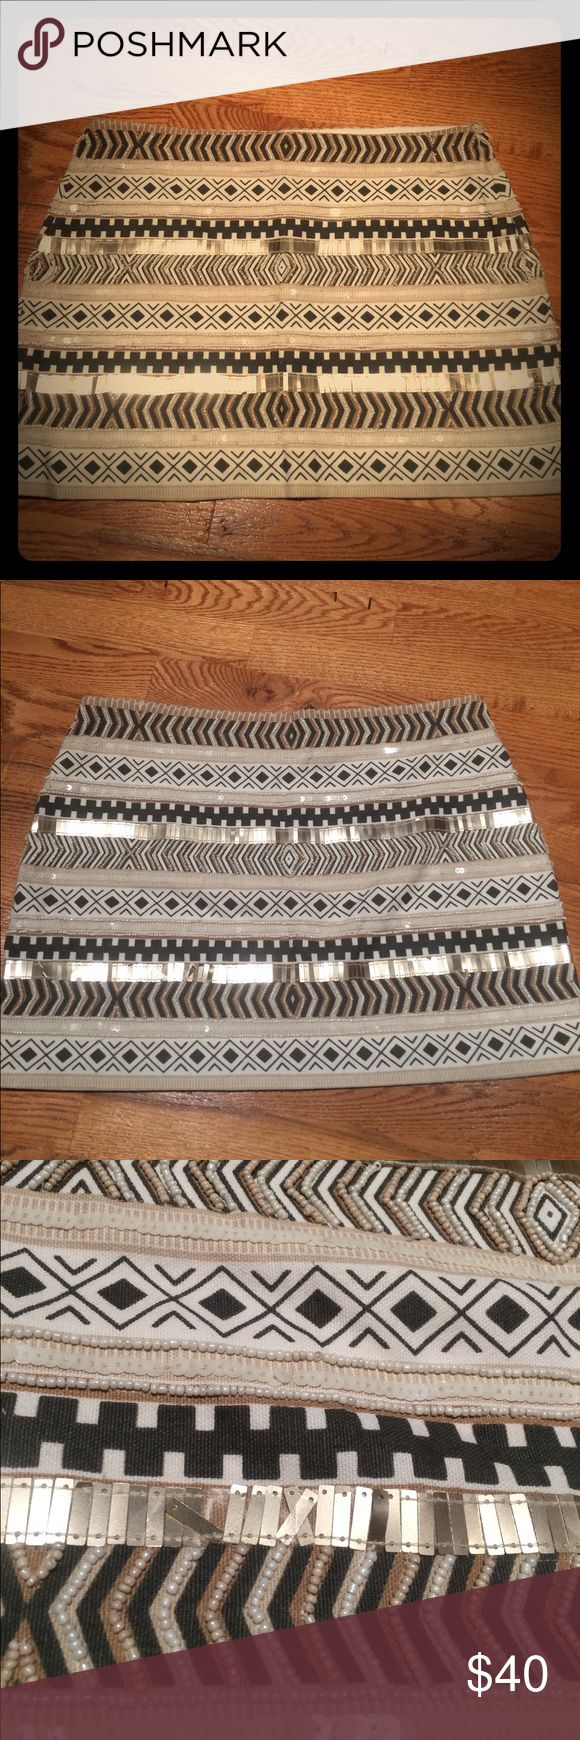 "Zara Aztec beaded mini skirt size large brown/tan Zara beaded Aztec mini skirt. Size large. Few loose or missing beads a pictures show, but not noticeable with skirt on! Measurements are about 15.5"" waist laying flat and littler over 13"" long. Beading is on both sides. Stunning skirt!! Zara Skirts Mini"